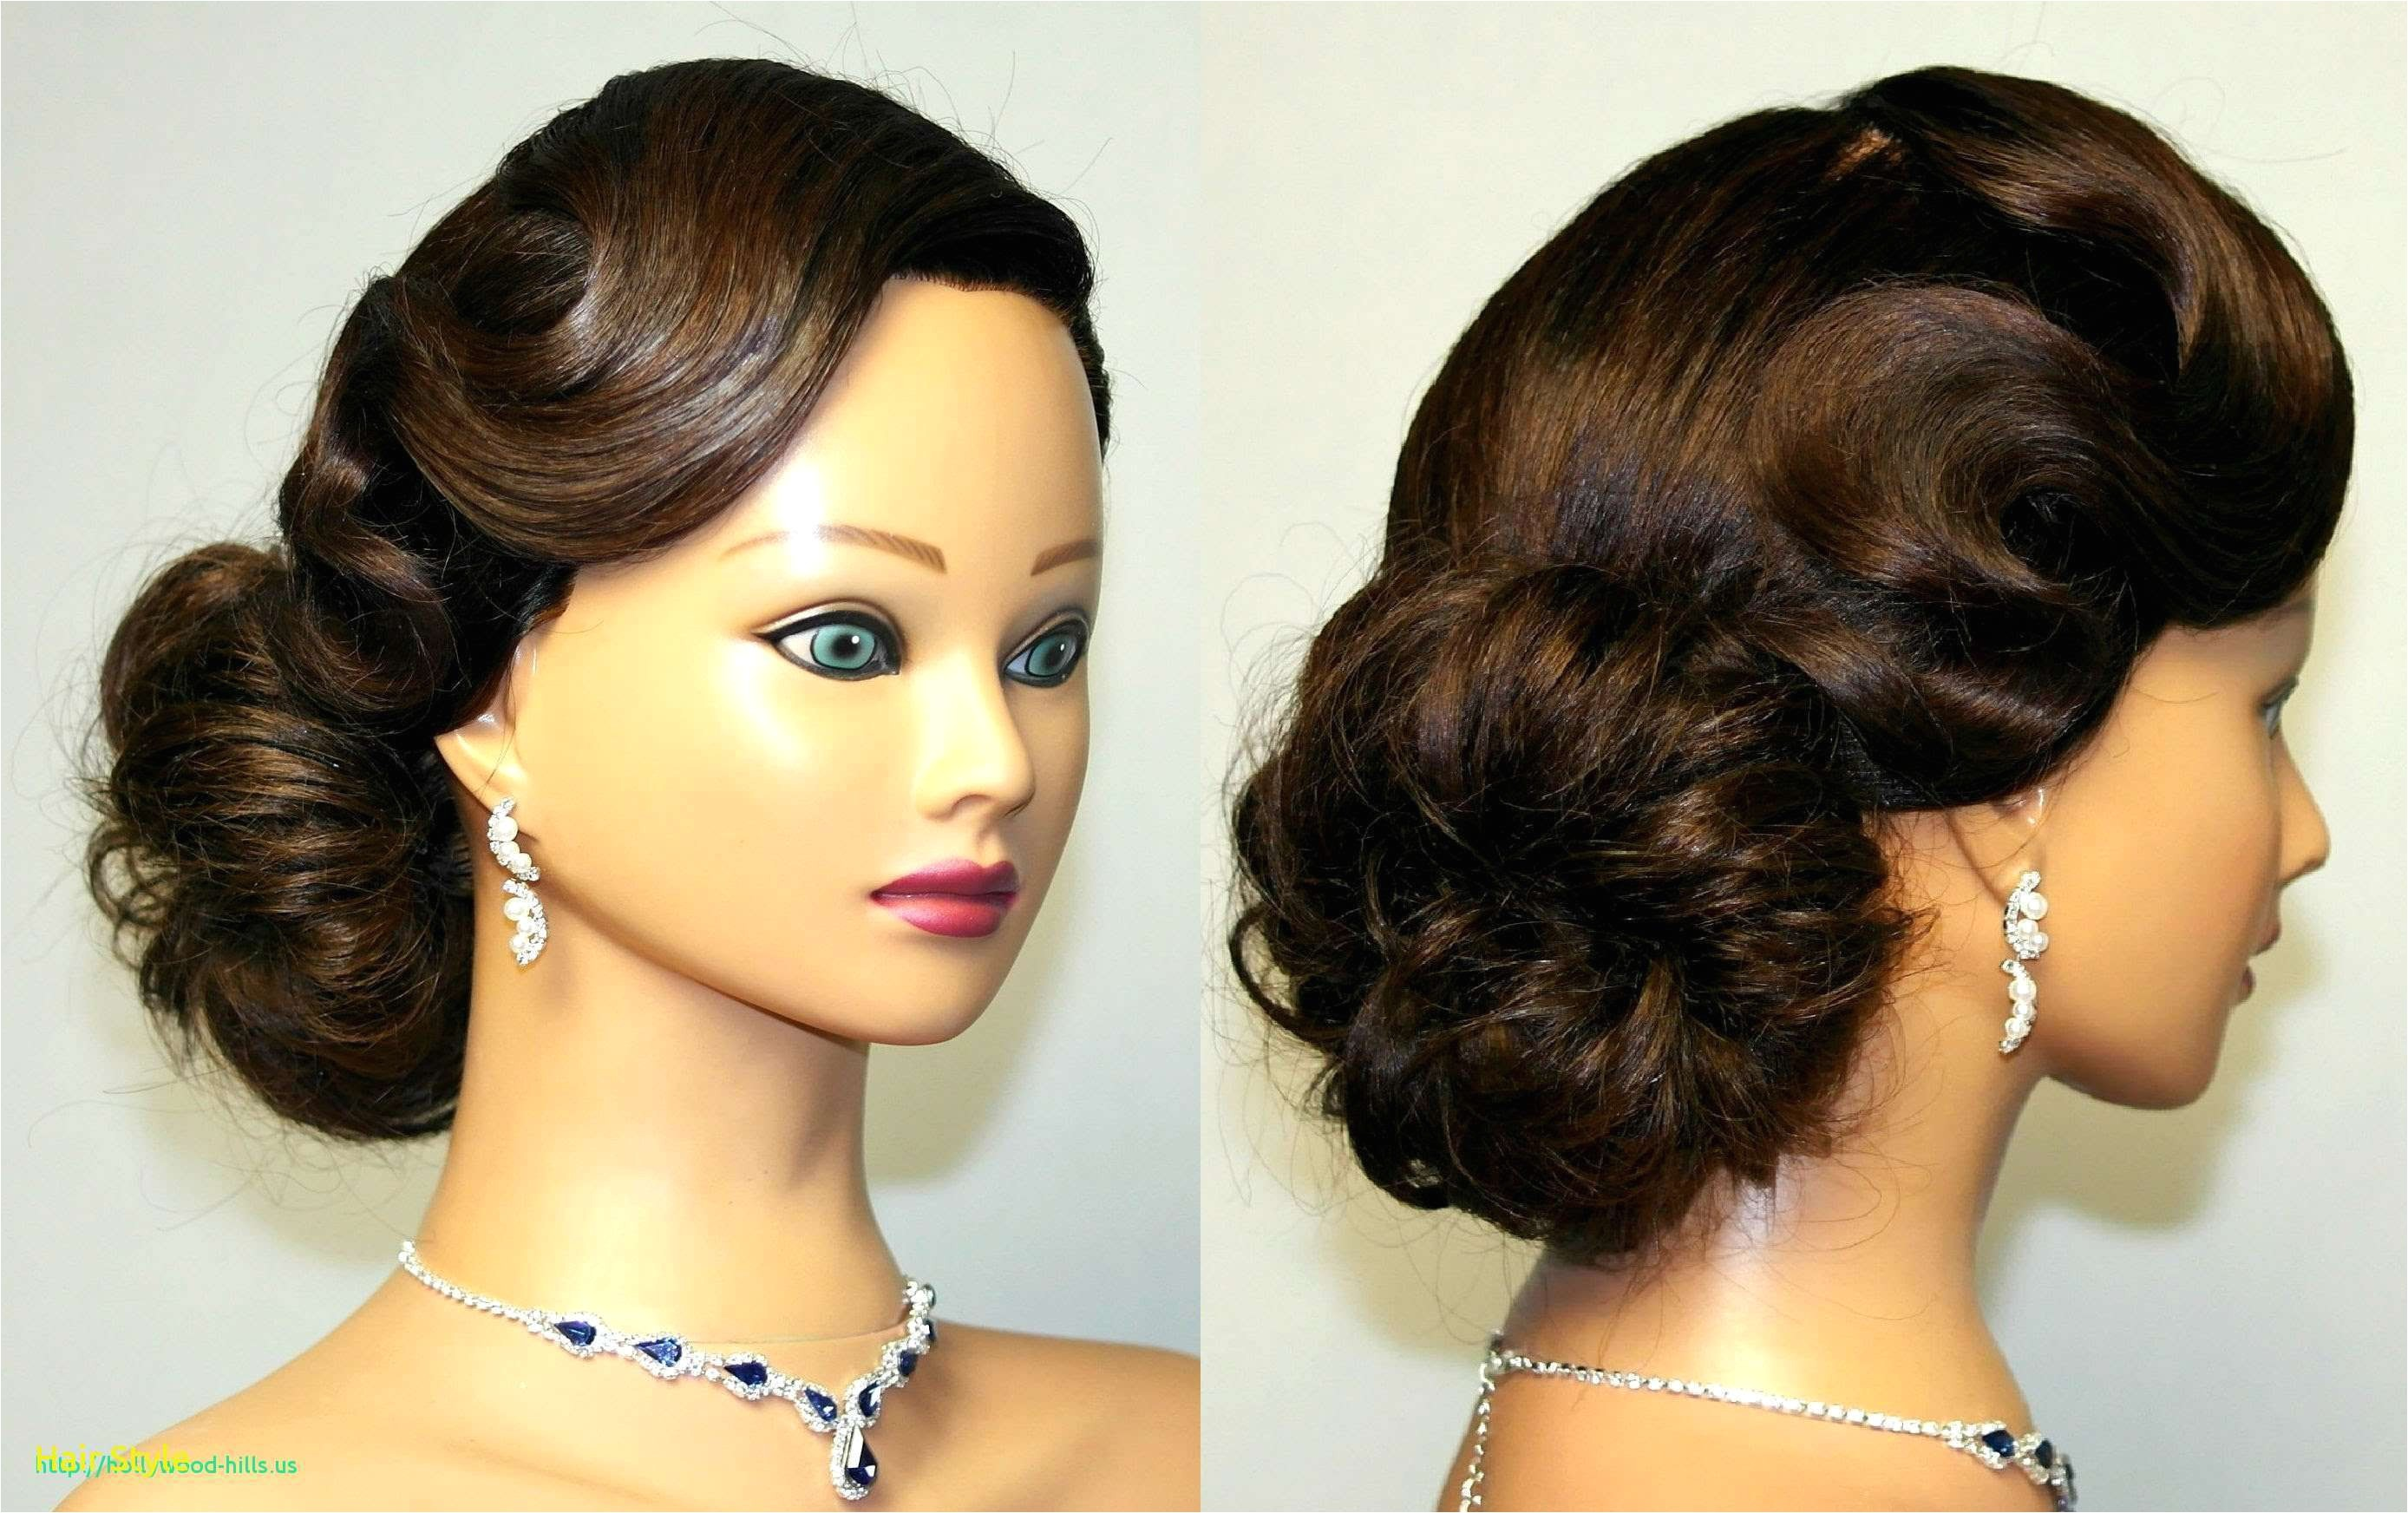 Hairstyles for American Girl Dolls with Curly Hair Inspirational Curly Bun Hairstyles Fresh Spectacular Hairstyles for